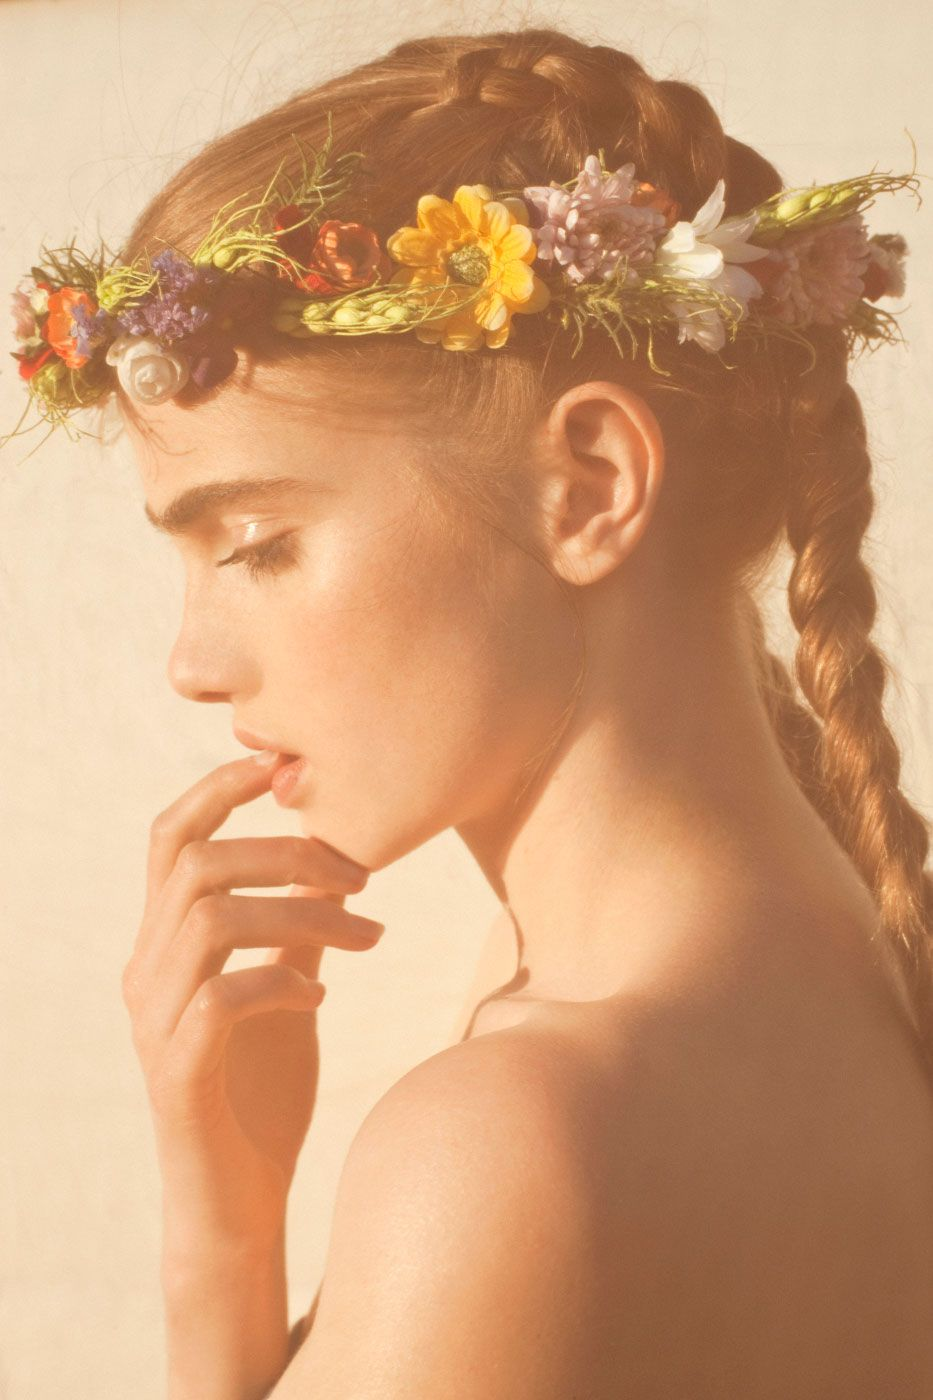 flower in her hair - photo #1